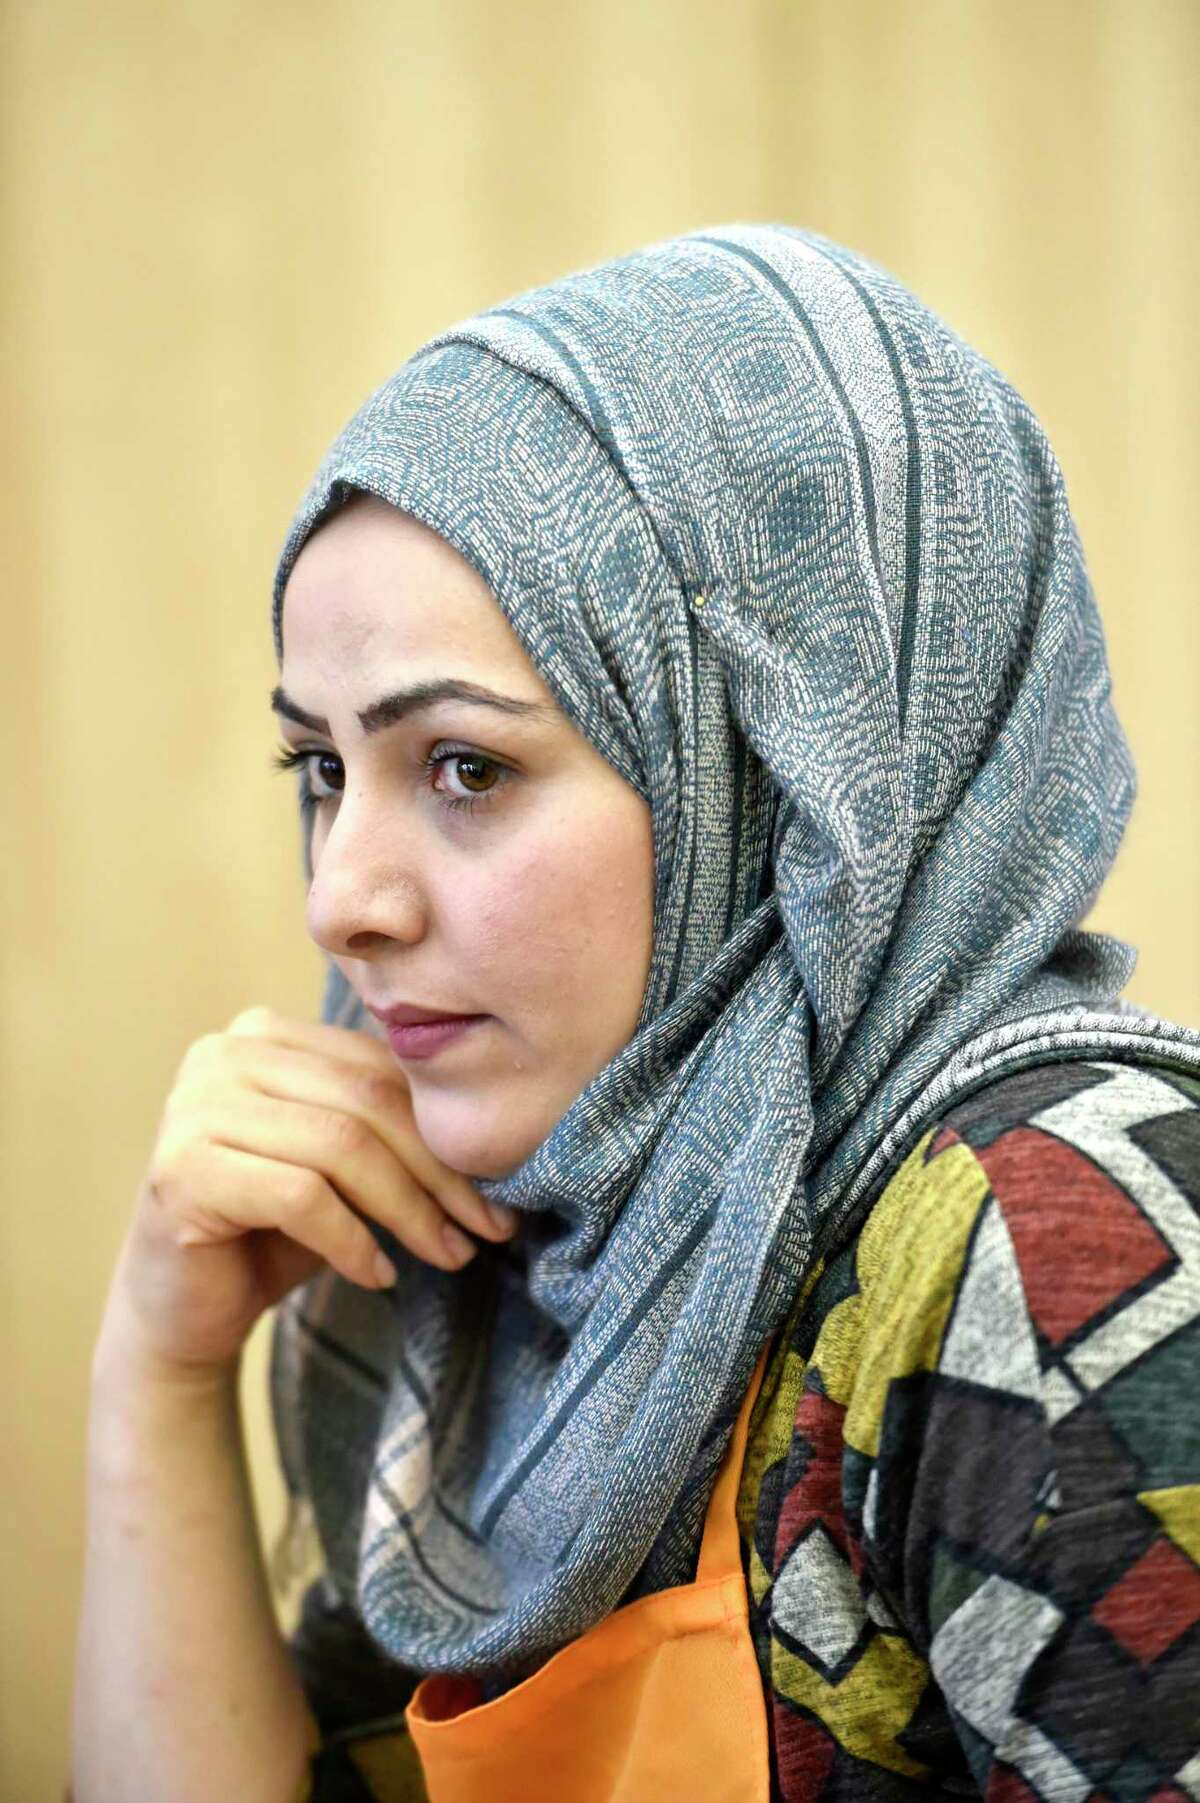 Sanctuary Kitchen at City Seed Chef Aminah Alsaleh, 31, shown in this photo taken Oct. 9, is a refugee from Homs, Syria. She resettled in New Haven in 2016 with her husband and three children. In 2012, Aminah fled the war in Syria with her family and walked to Jordan with nothing but clothes on their back. Aminah is in the process of starting up her catering business to help support her family.